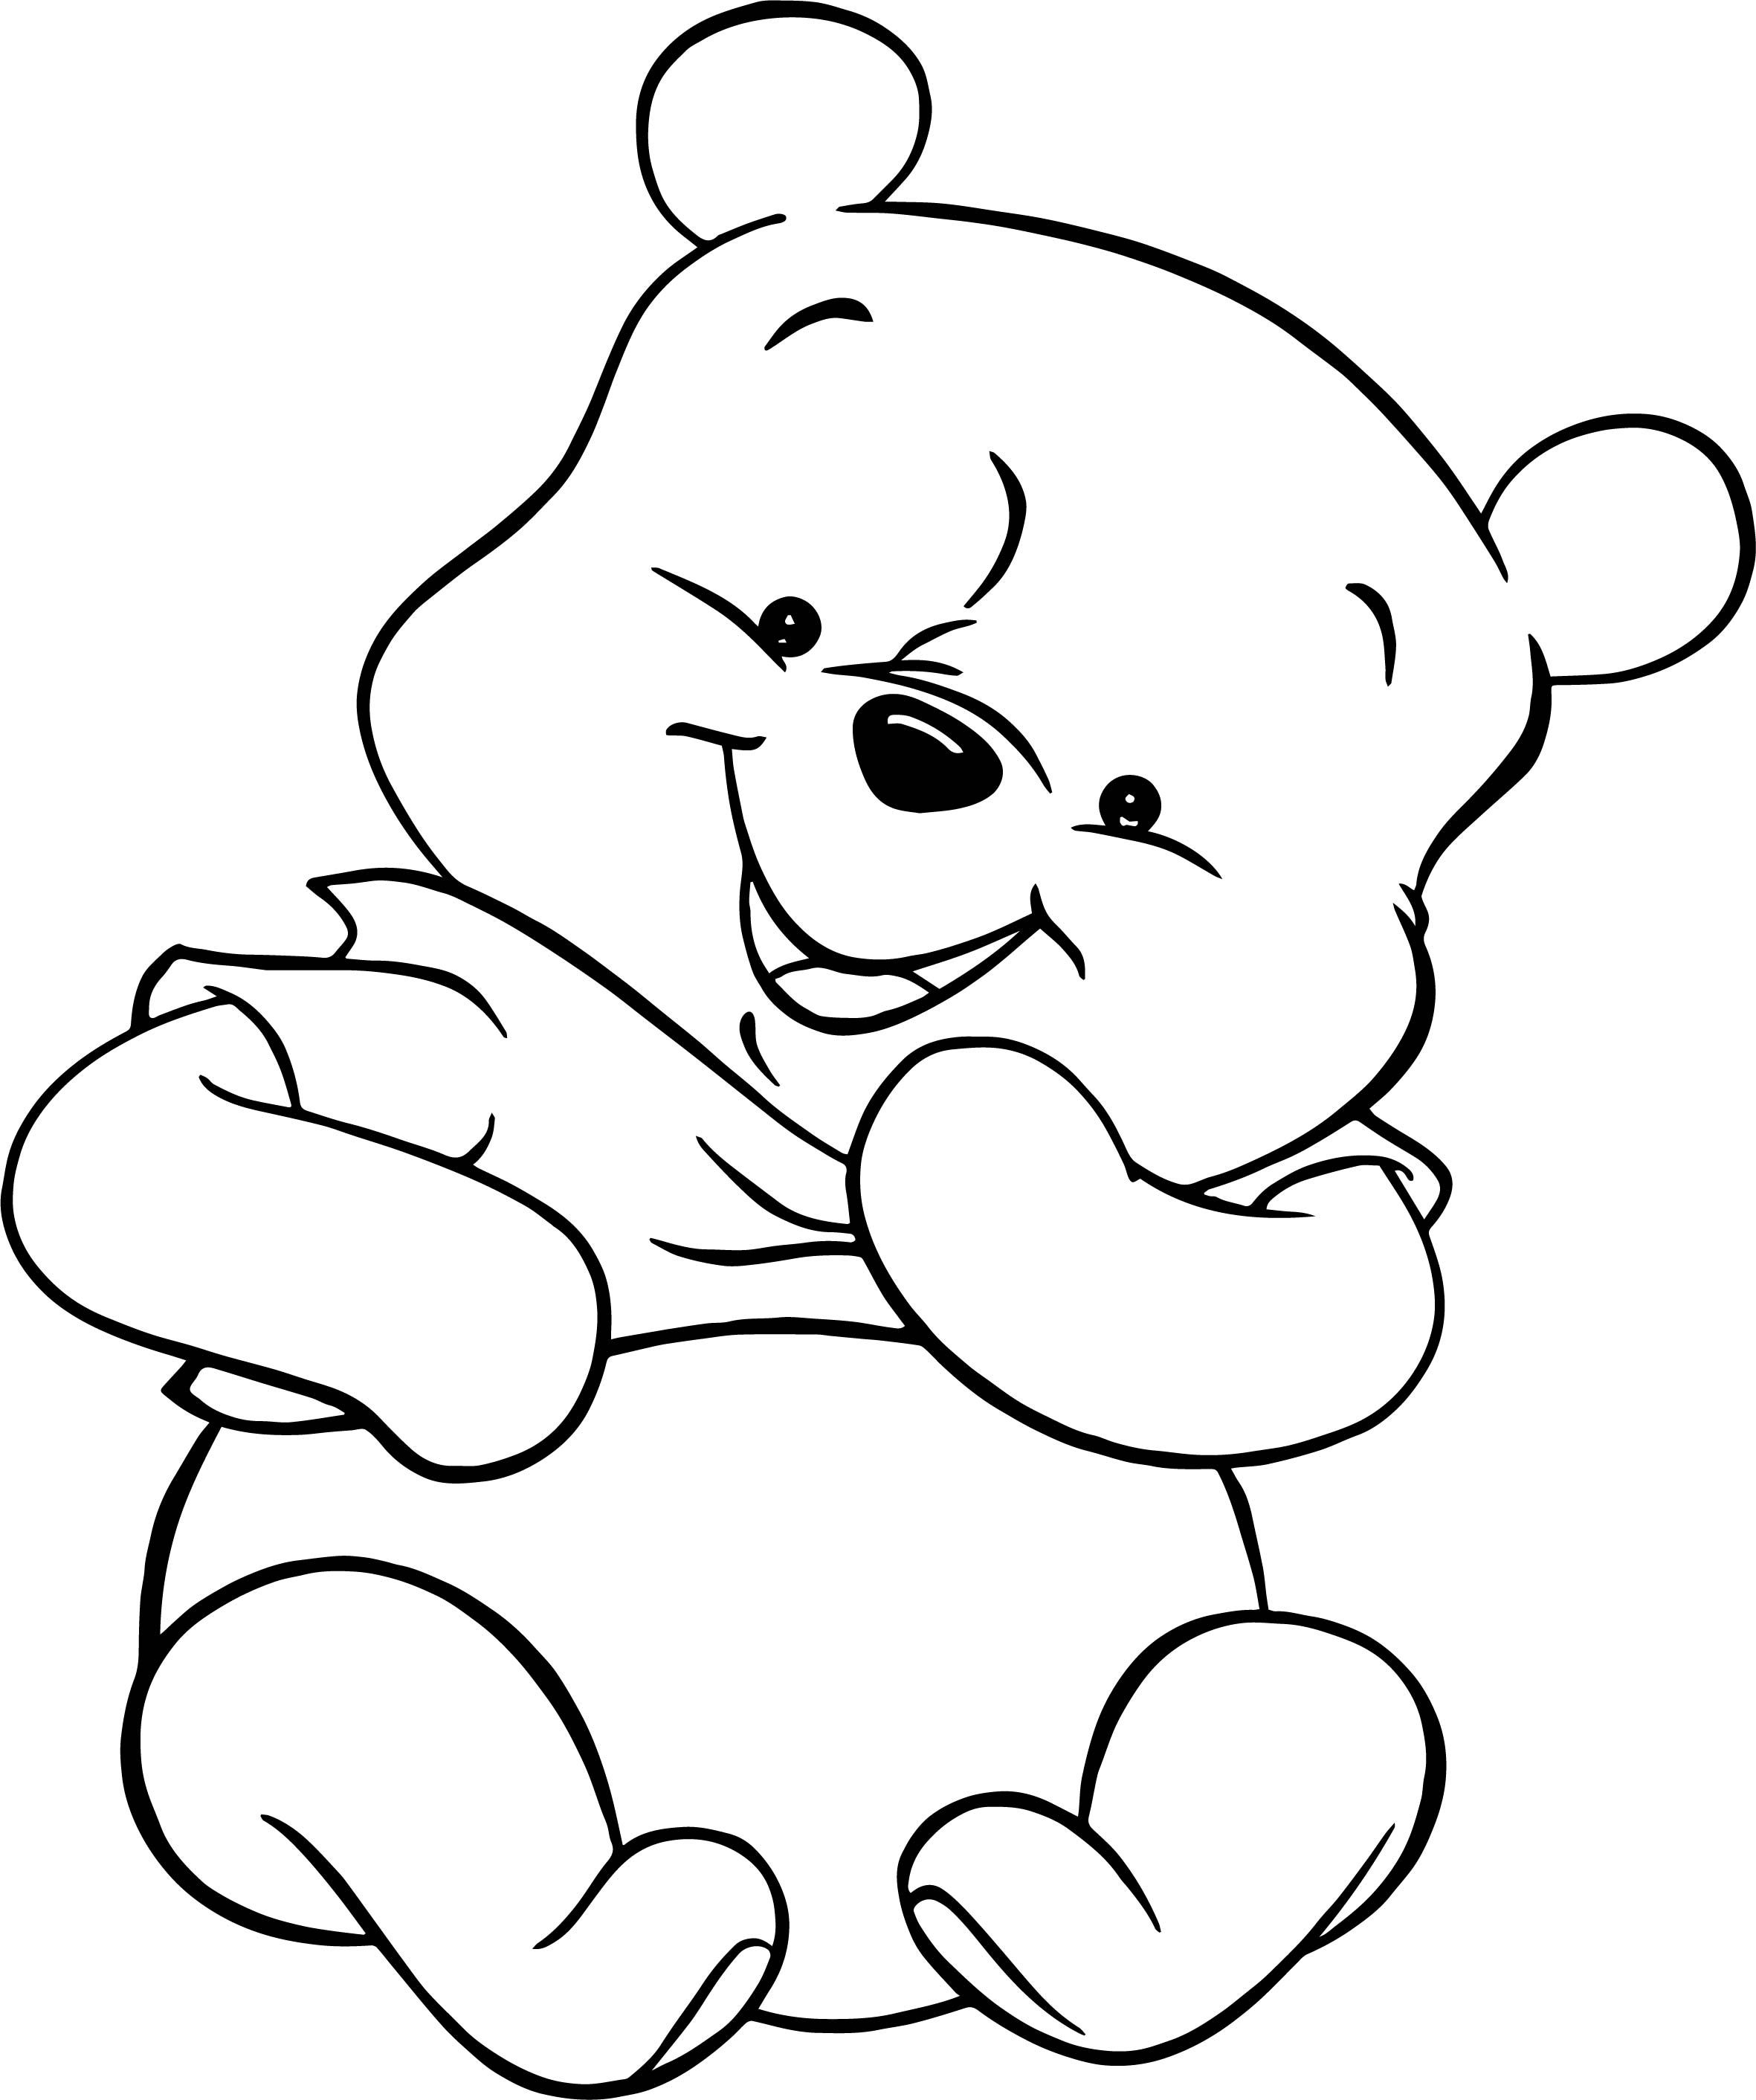 Cool Baby Pooh Toy Gift Coloring Pages Bear Coloring Pages Disney Coloring Pages Baby Coloring Pages